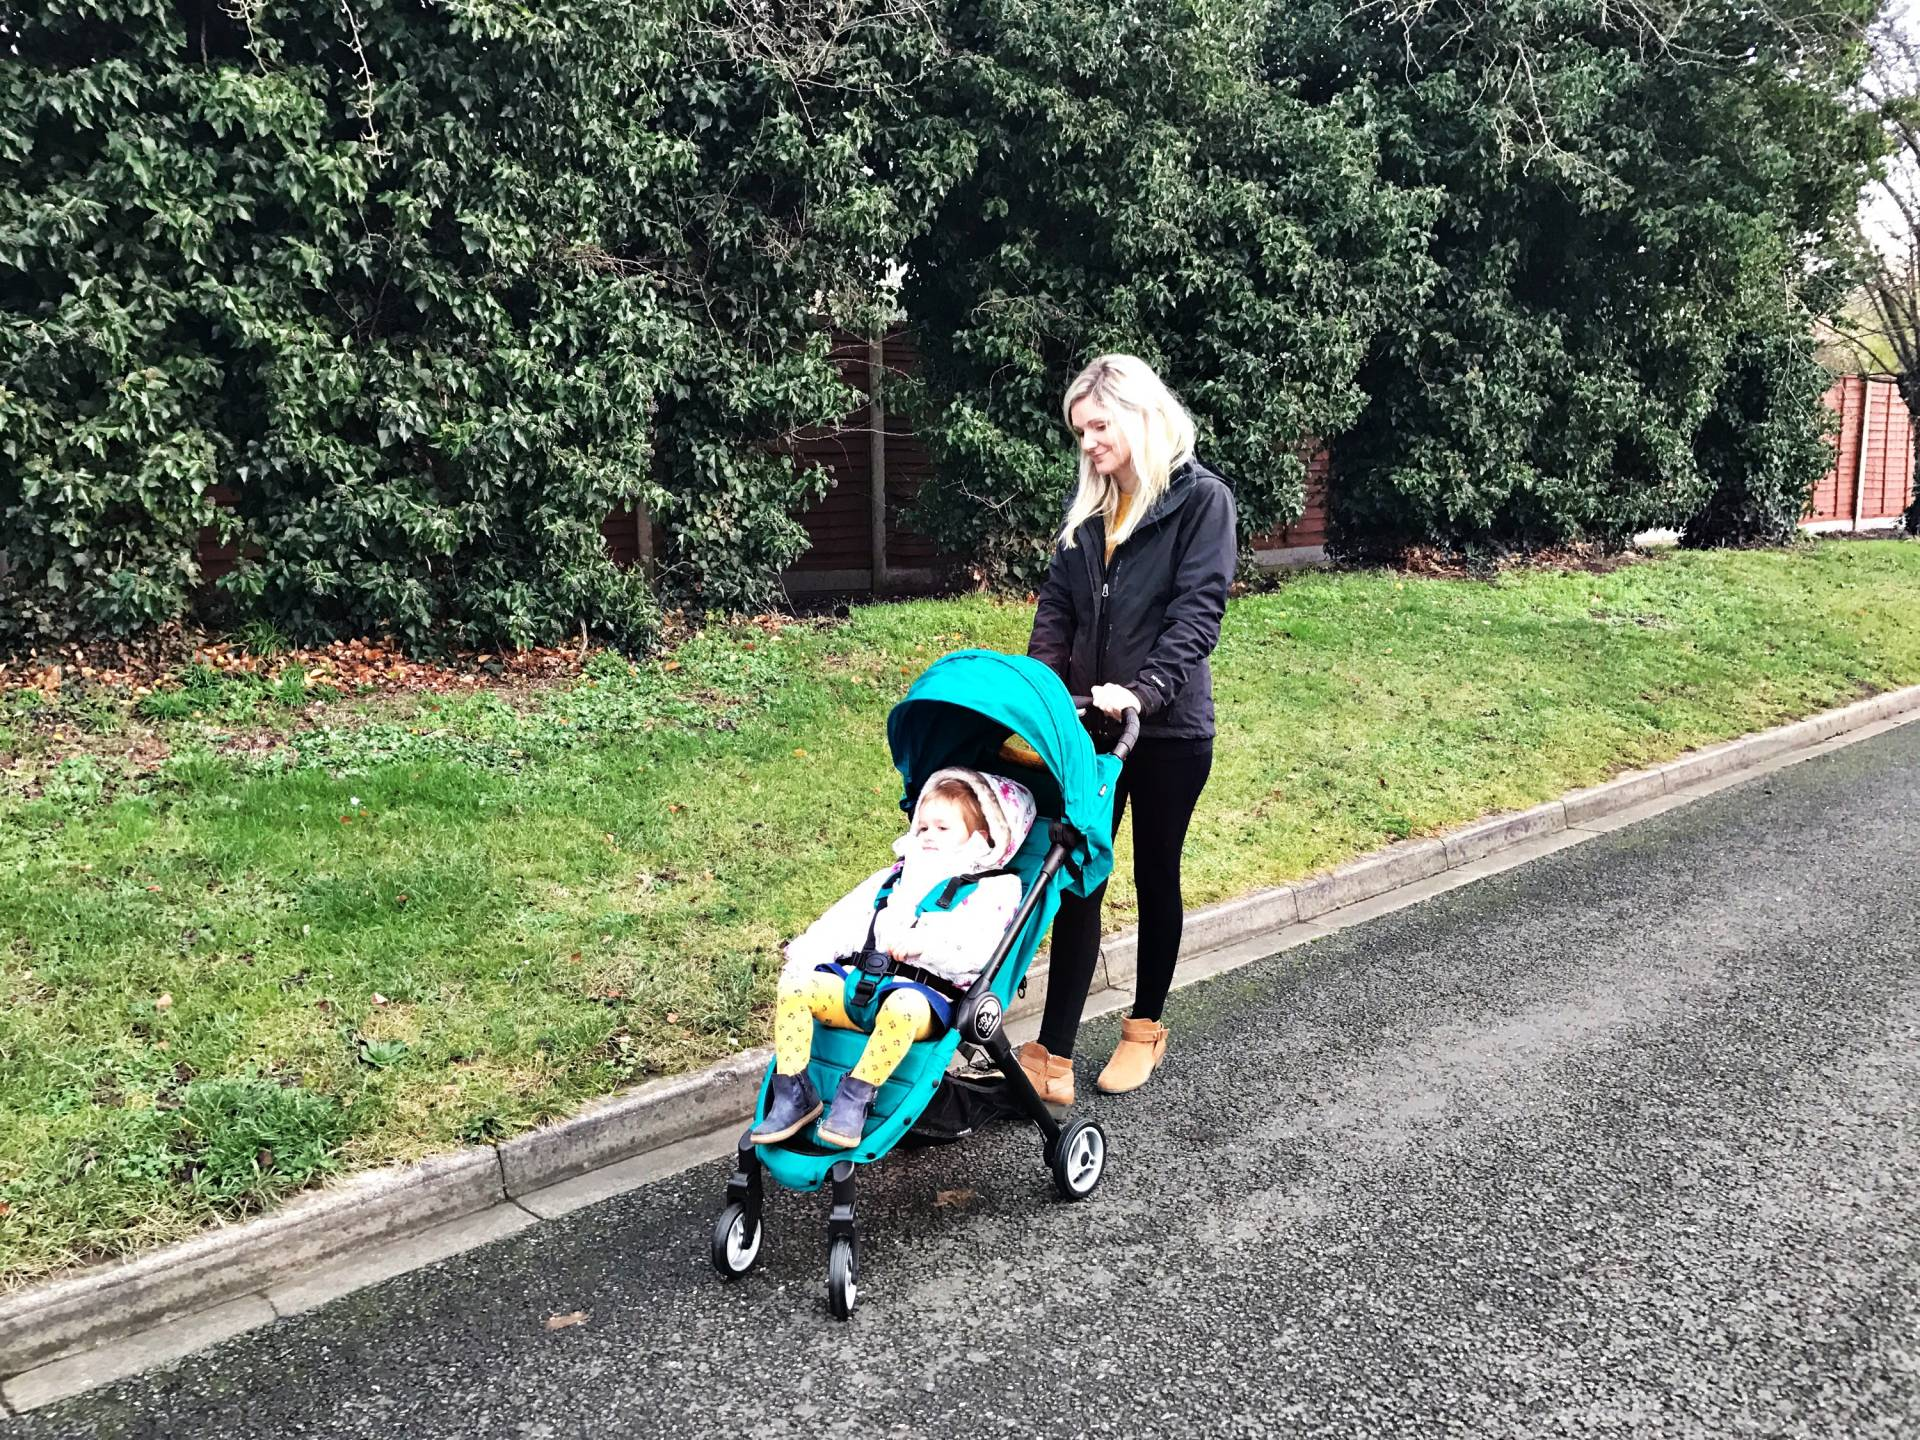 The Baby Jogger City Tour review